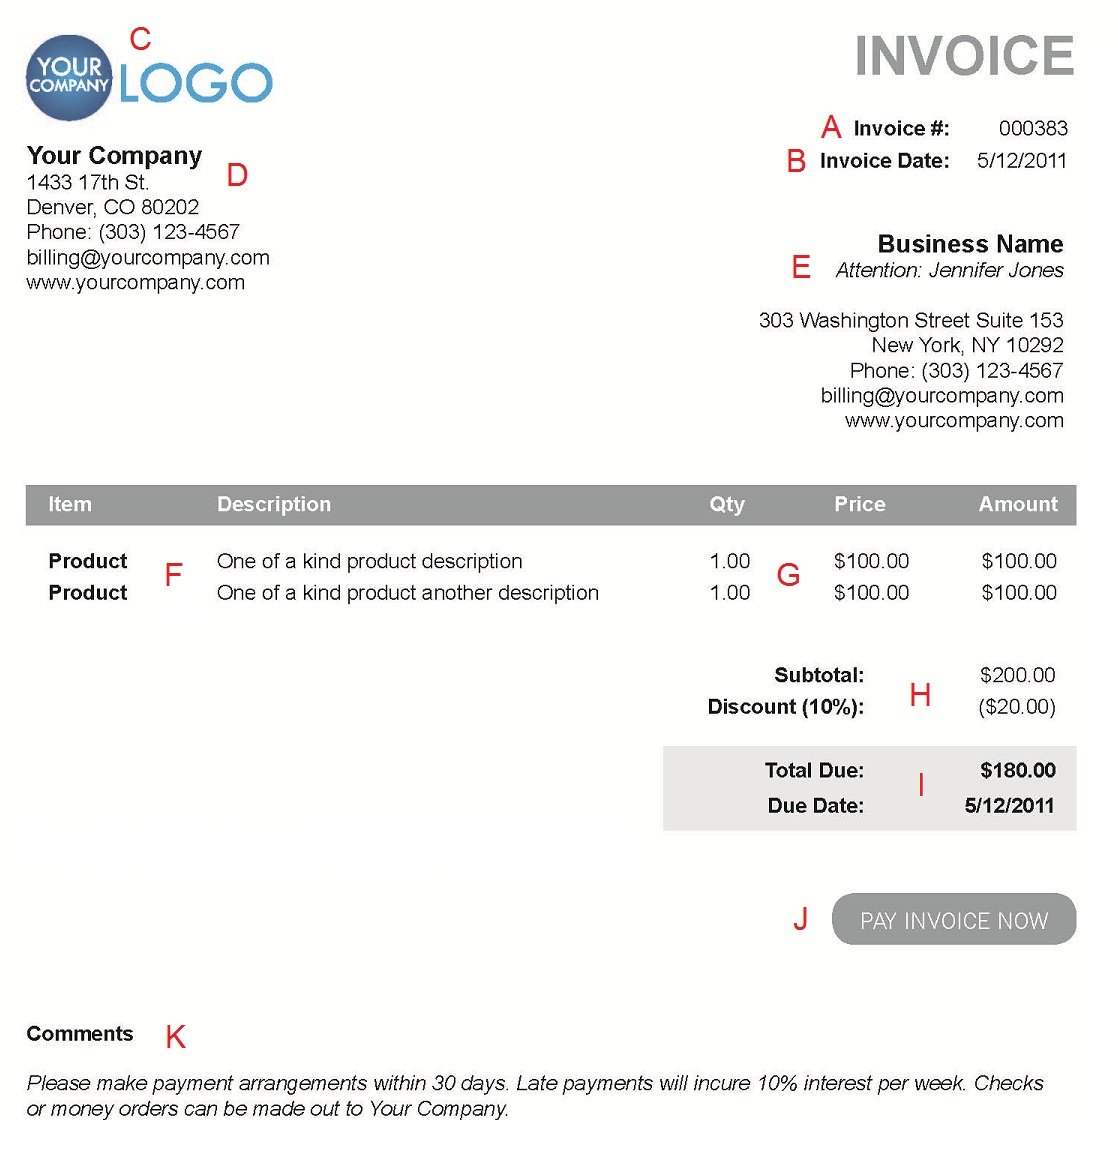 Atvingus  Pretty The  Different Sections Of An Electronic Payment Invoice With Licious A  With Charming Neat Receipt Software Also All Receipts In Addition Mcdonalds Receipt Tattoo And Avis Receipts As Well As Autozone Return Policy Without Receipt Additionally Business Receipt From Paysimplecom With Atvingus  Licious The  Different Sections Of An Electronic Payment Invoice With Charming A  And Pretty Neat Receipt Software Also All Receipts In Addition Mcdonalds Receipt Tattoo From Paysimplecom